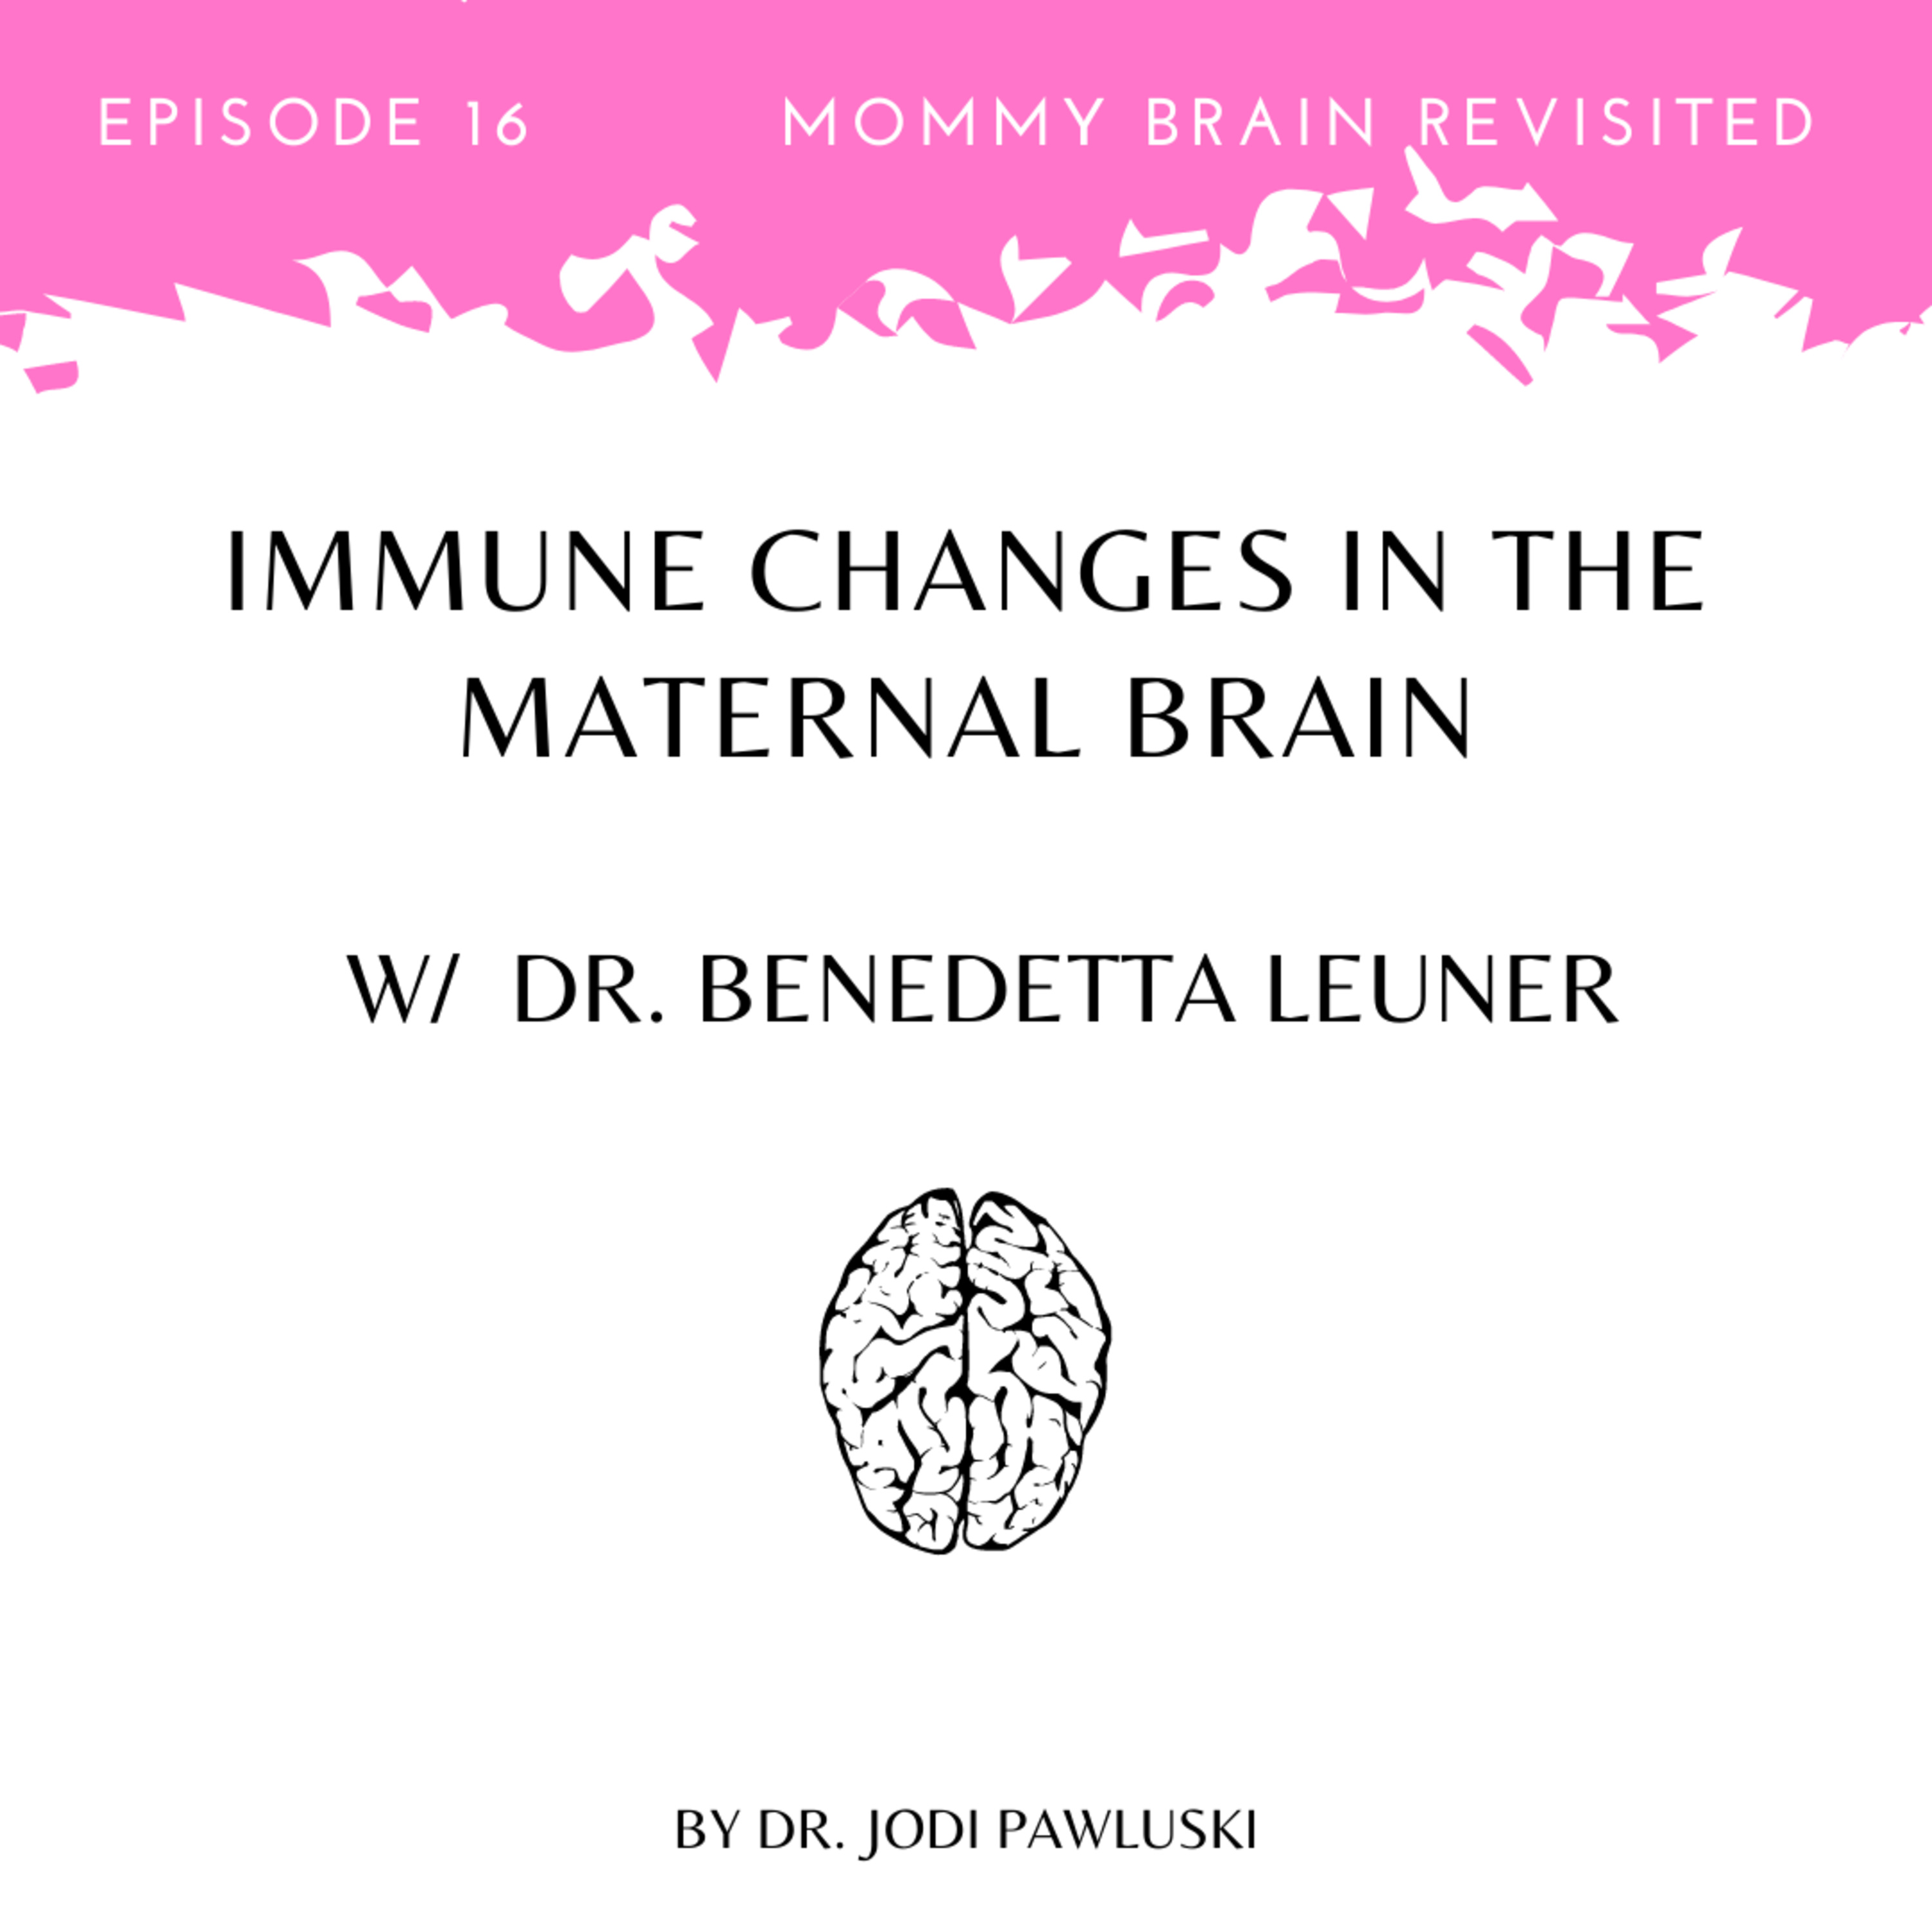 Immune Changes in the Maternal Brain